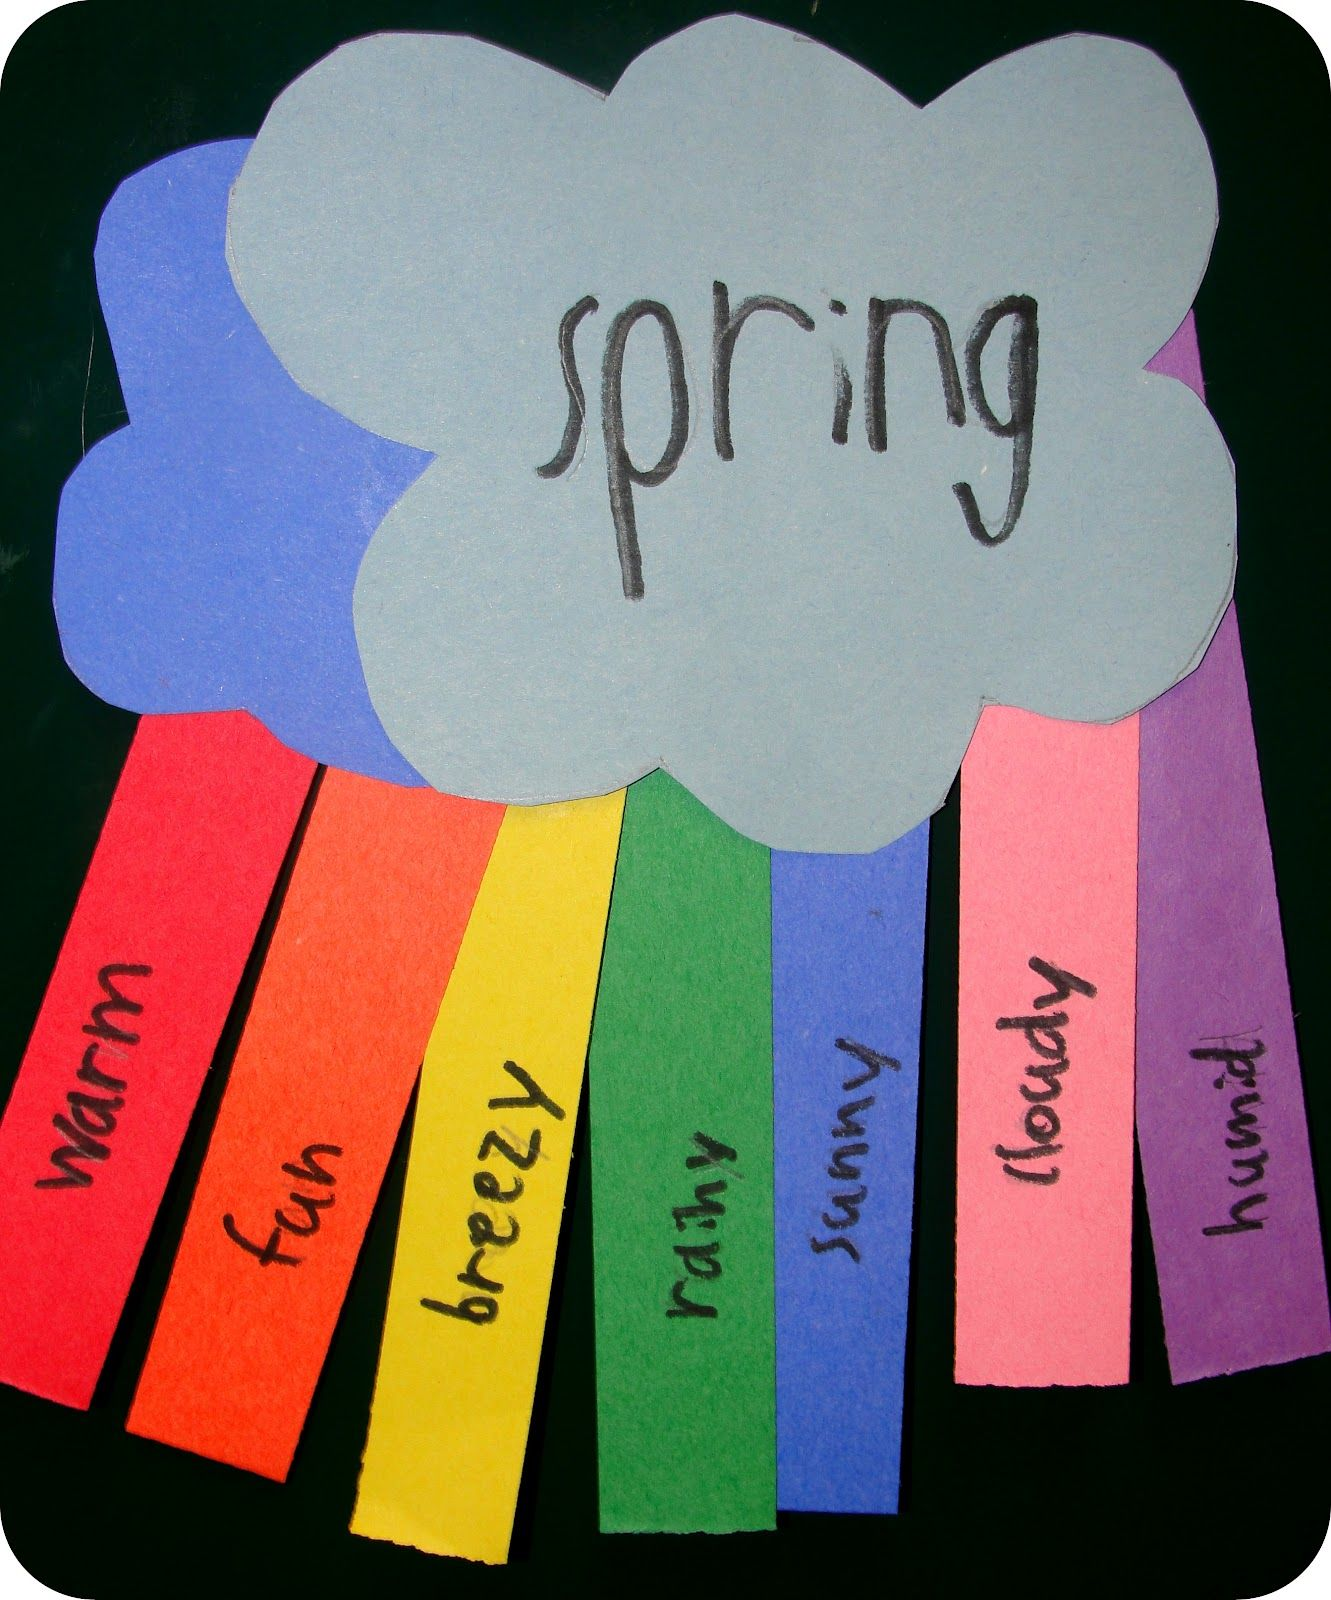 Adjectives Ybe Make The Colors Arches Of The Rainbow